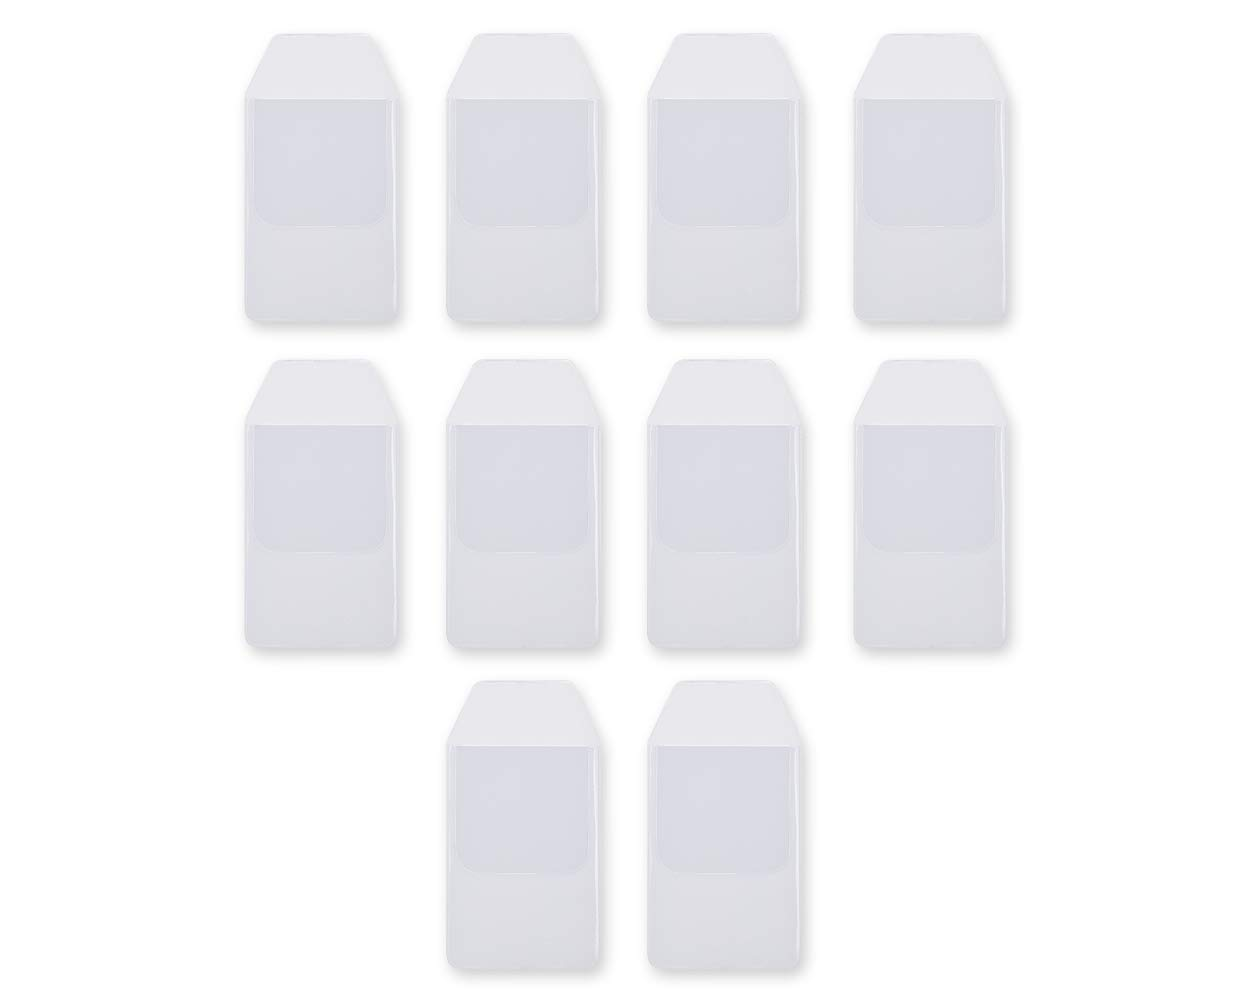 Ace Select Shirt Pocket Protector 10 Pieces Clear PVC Heavy Duty Pocket Protectors for School Hospital Office Supplies